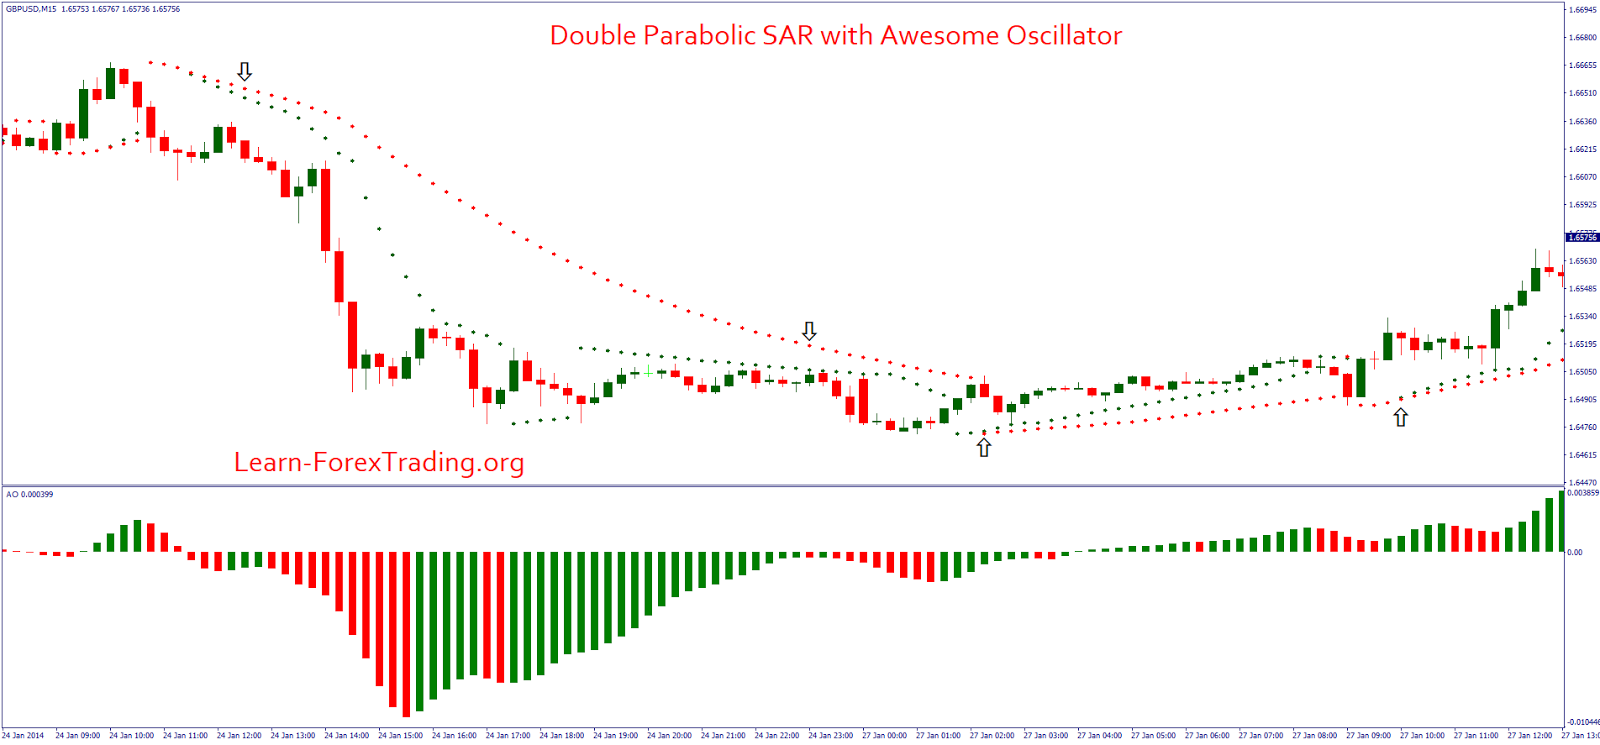 Double Parabolic Sar With Awesome Oscillator Trading Charts Sar Forex Trading Strategies